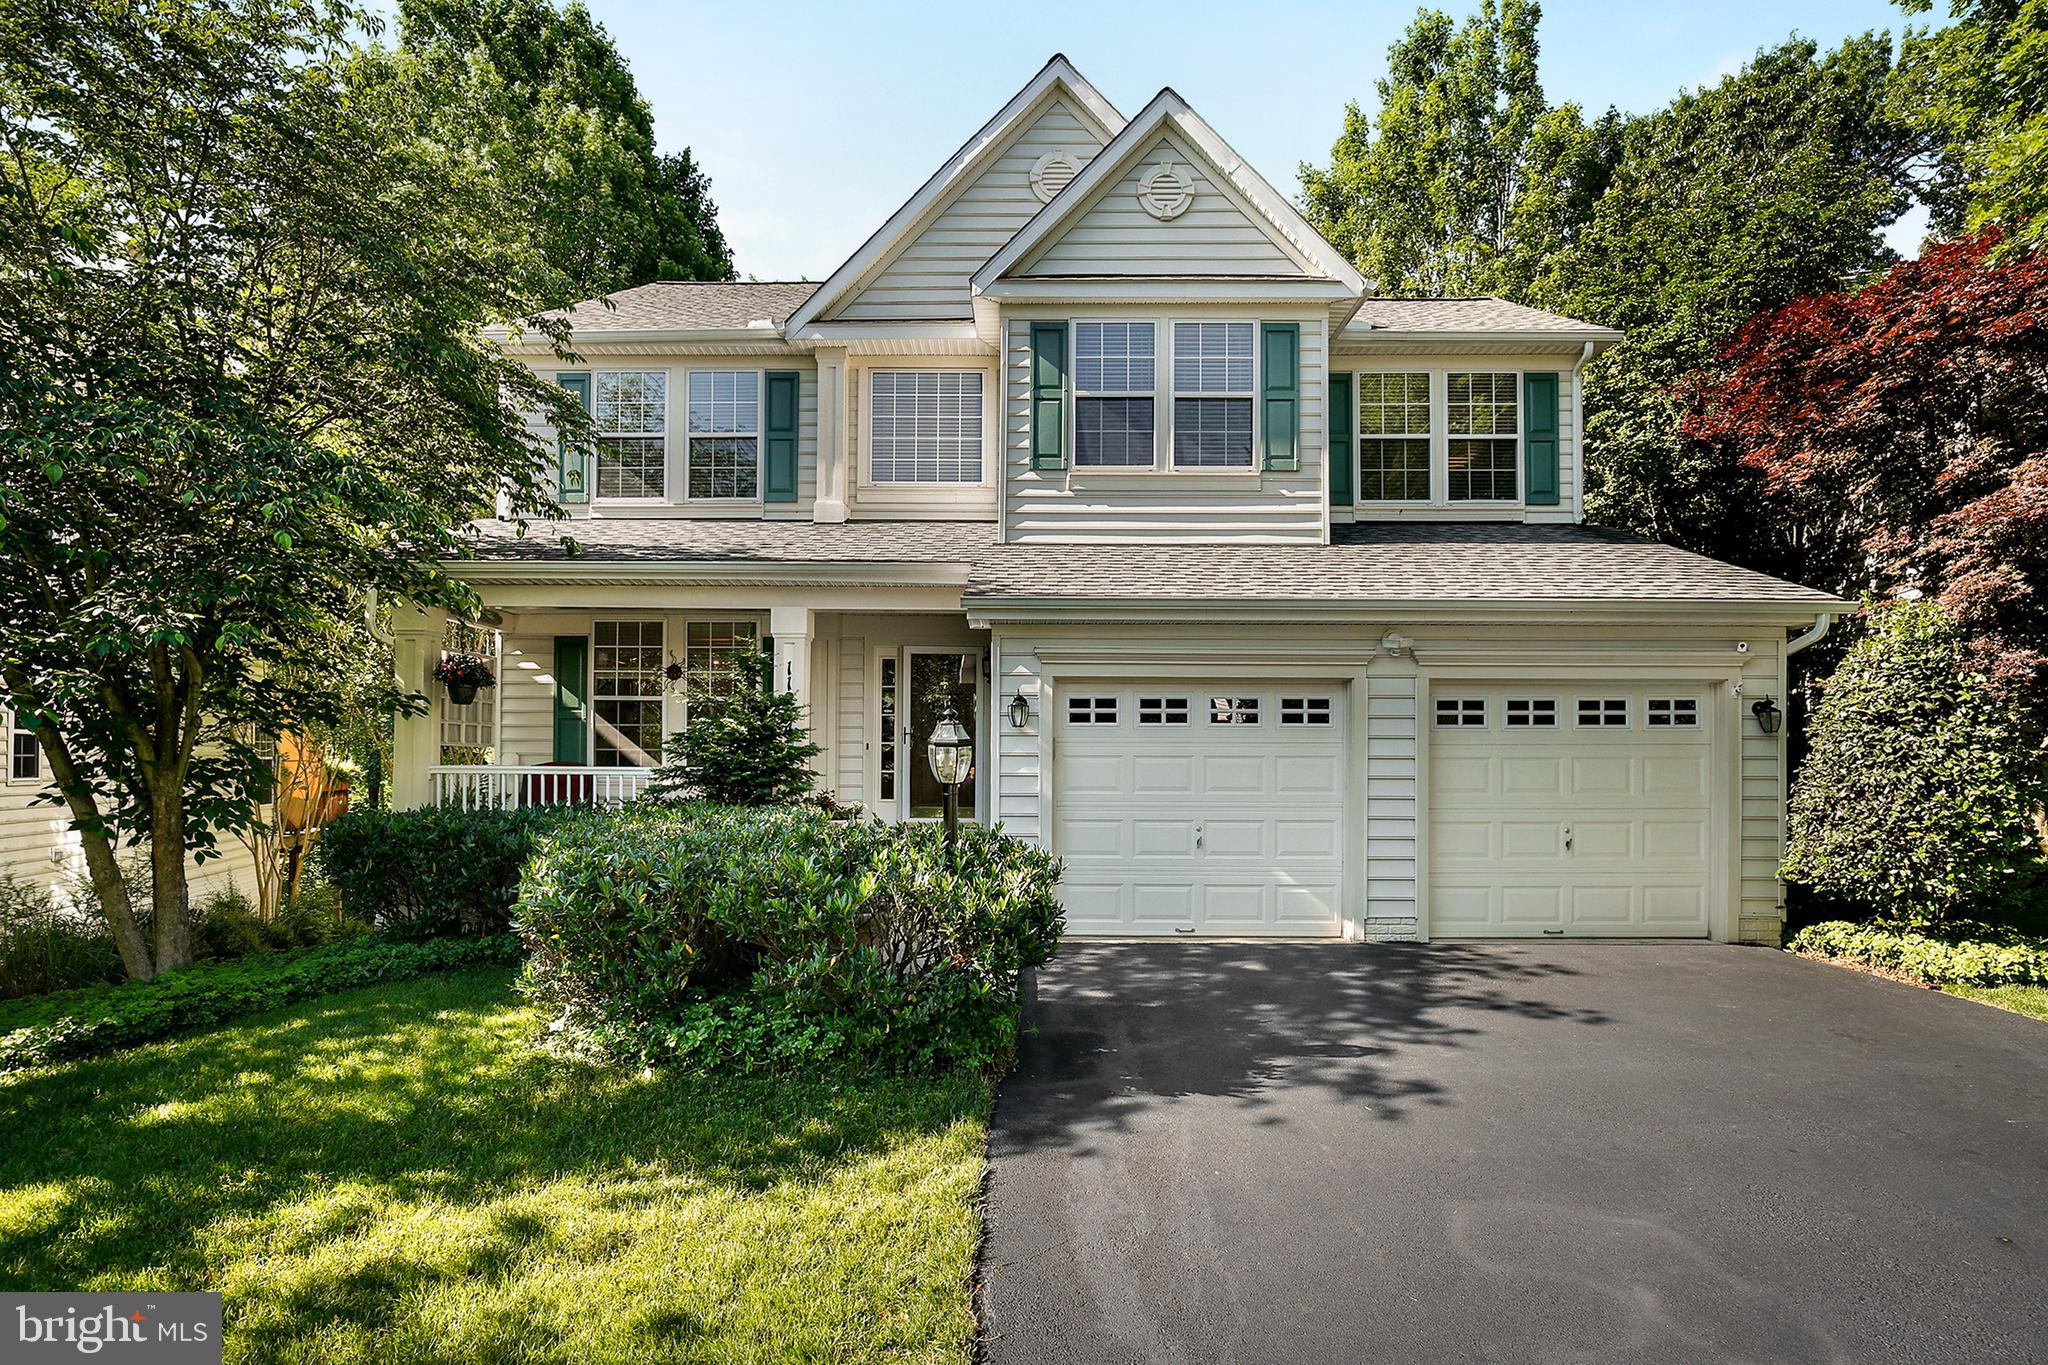 11214 WINDING BROOK LANE, GERMANTOWN, MD 20876